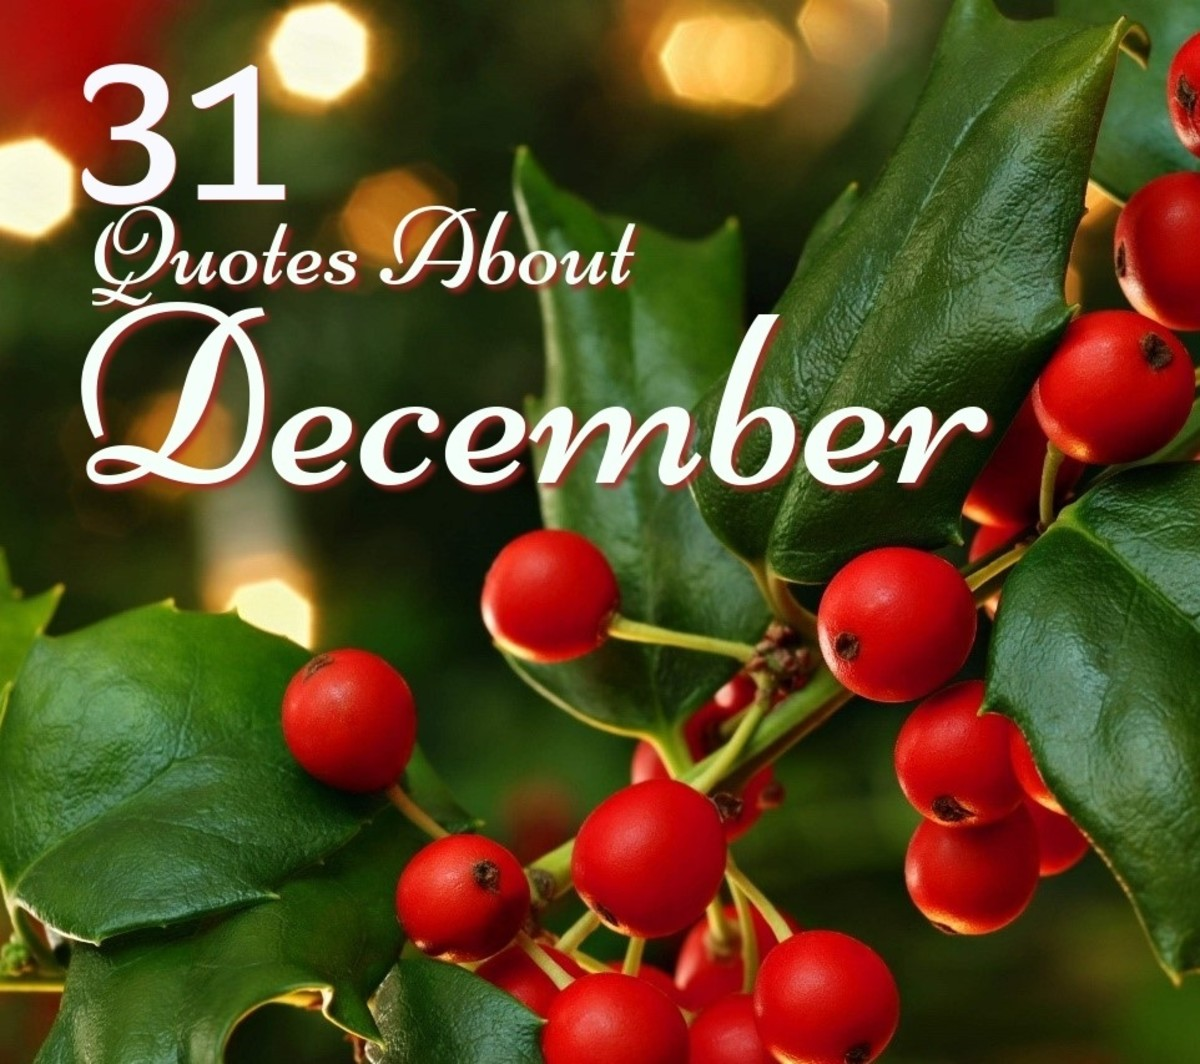 31 Quotes About December: The Month of Joy and Celebration